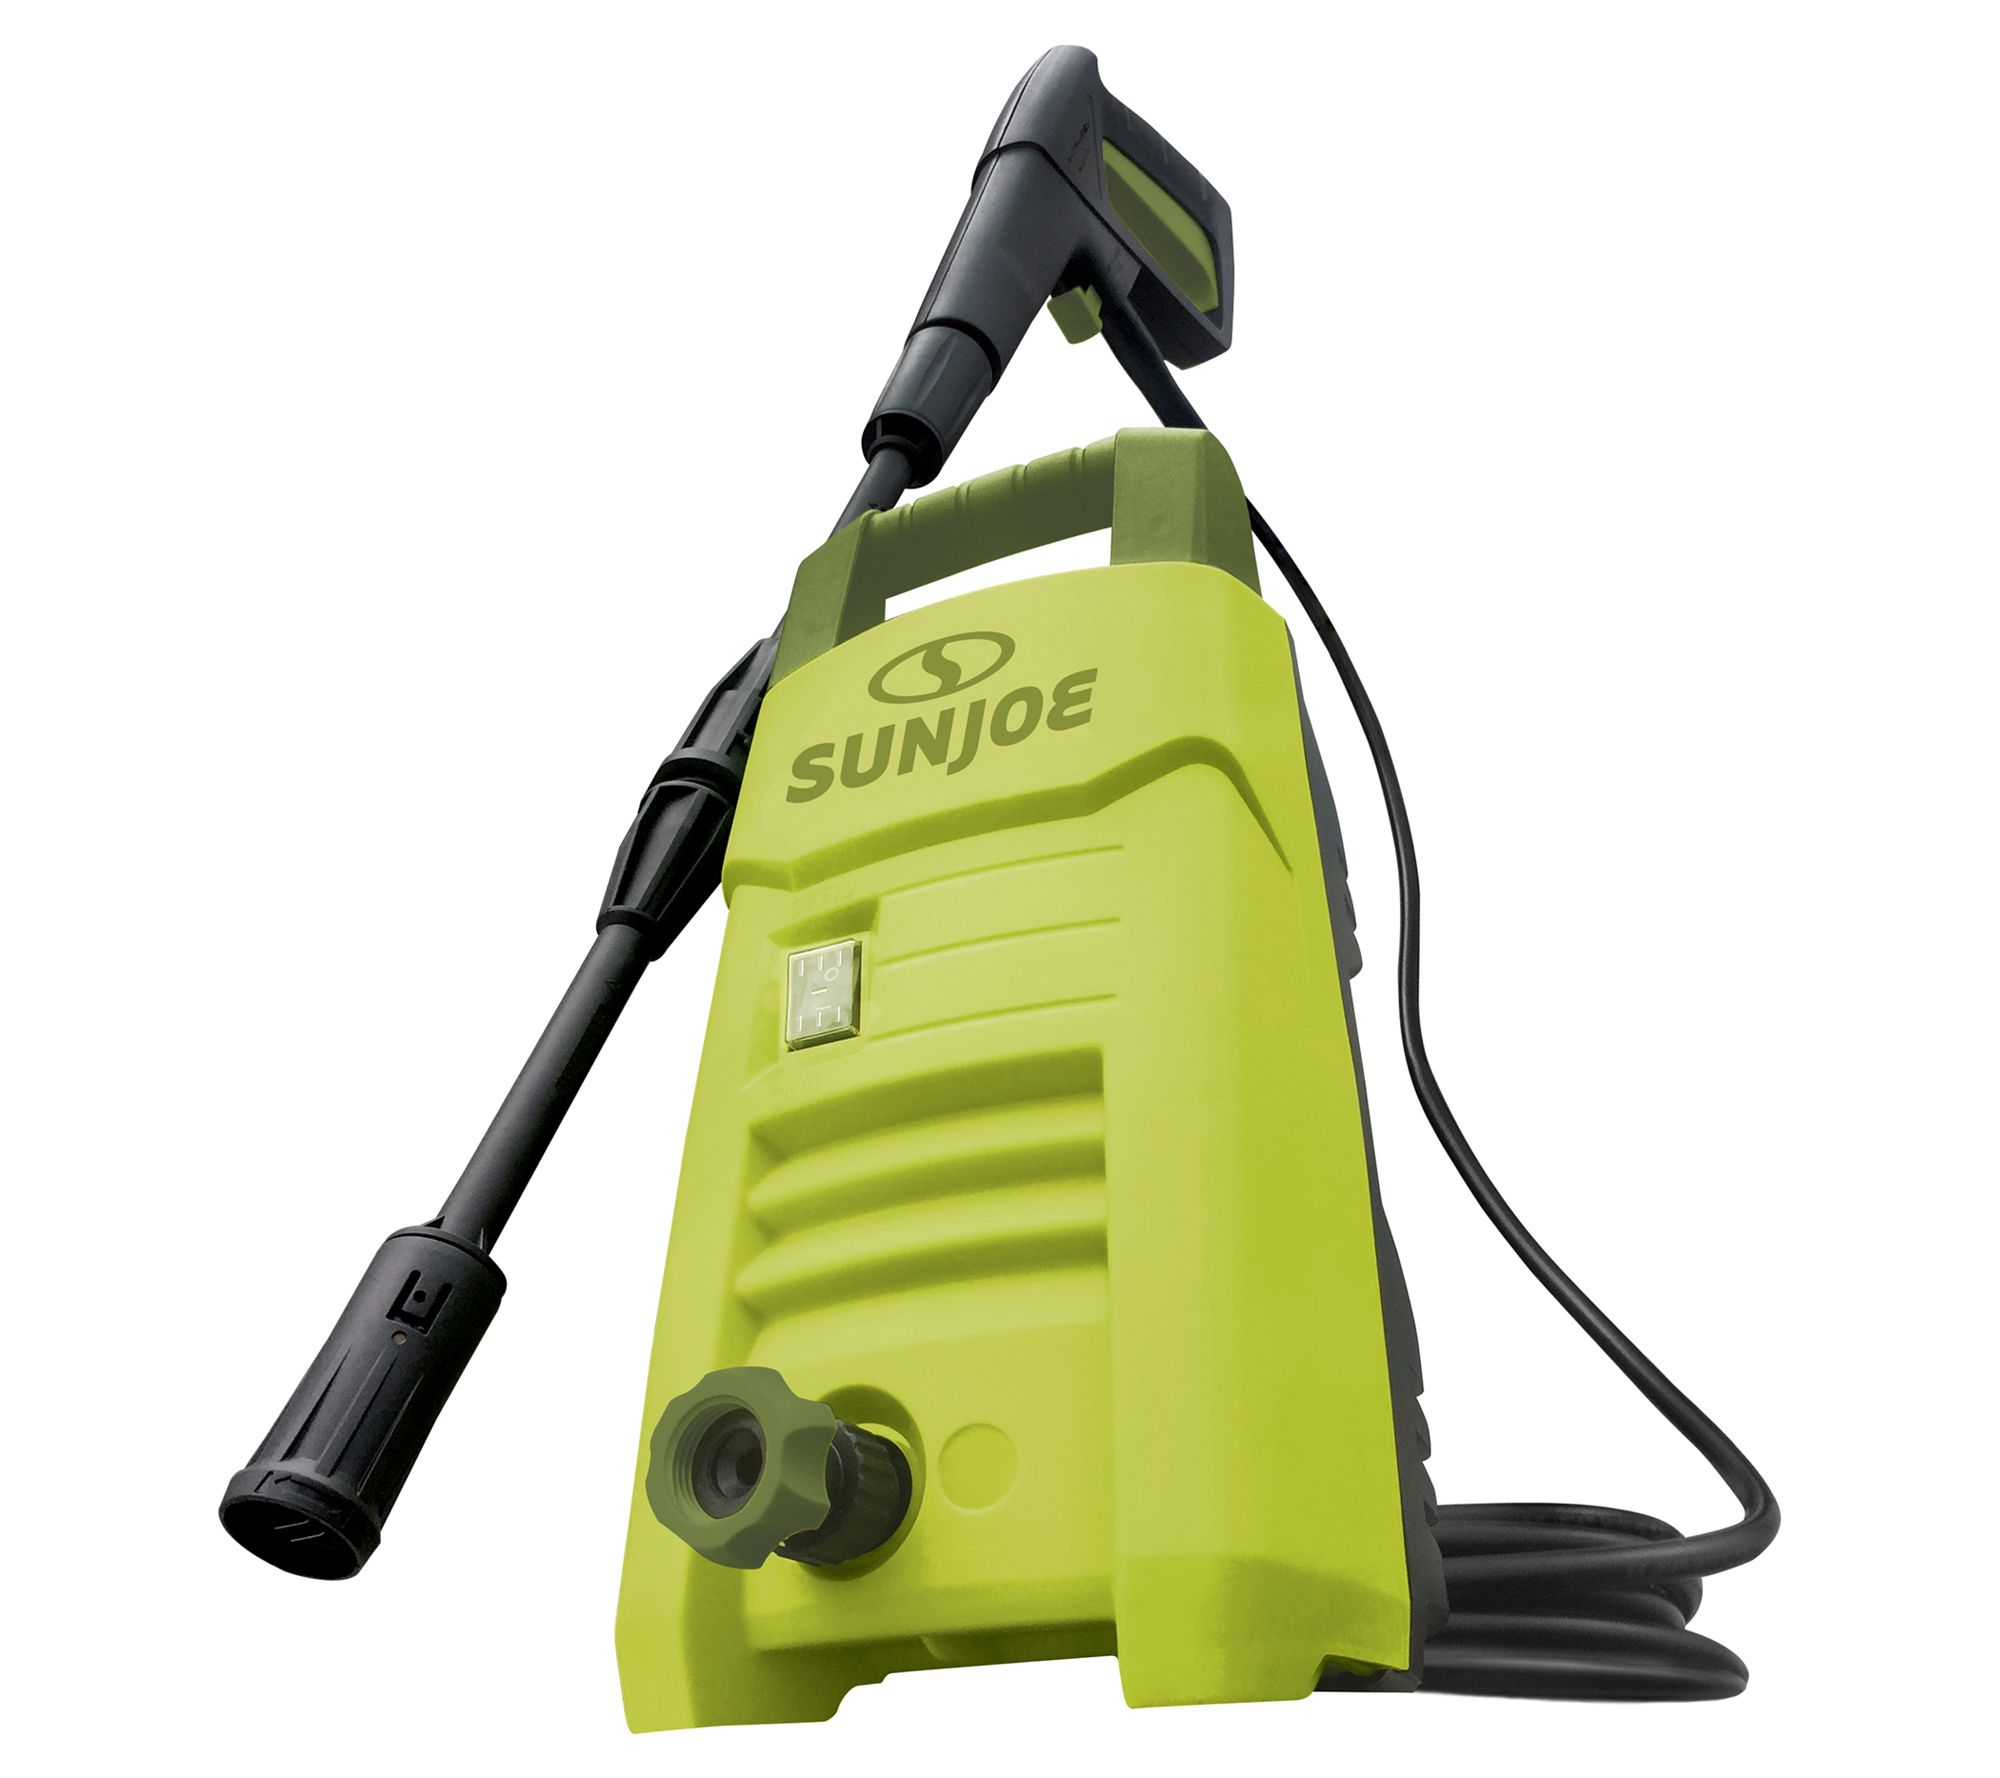 Powerful pressure washer with spray wand